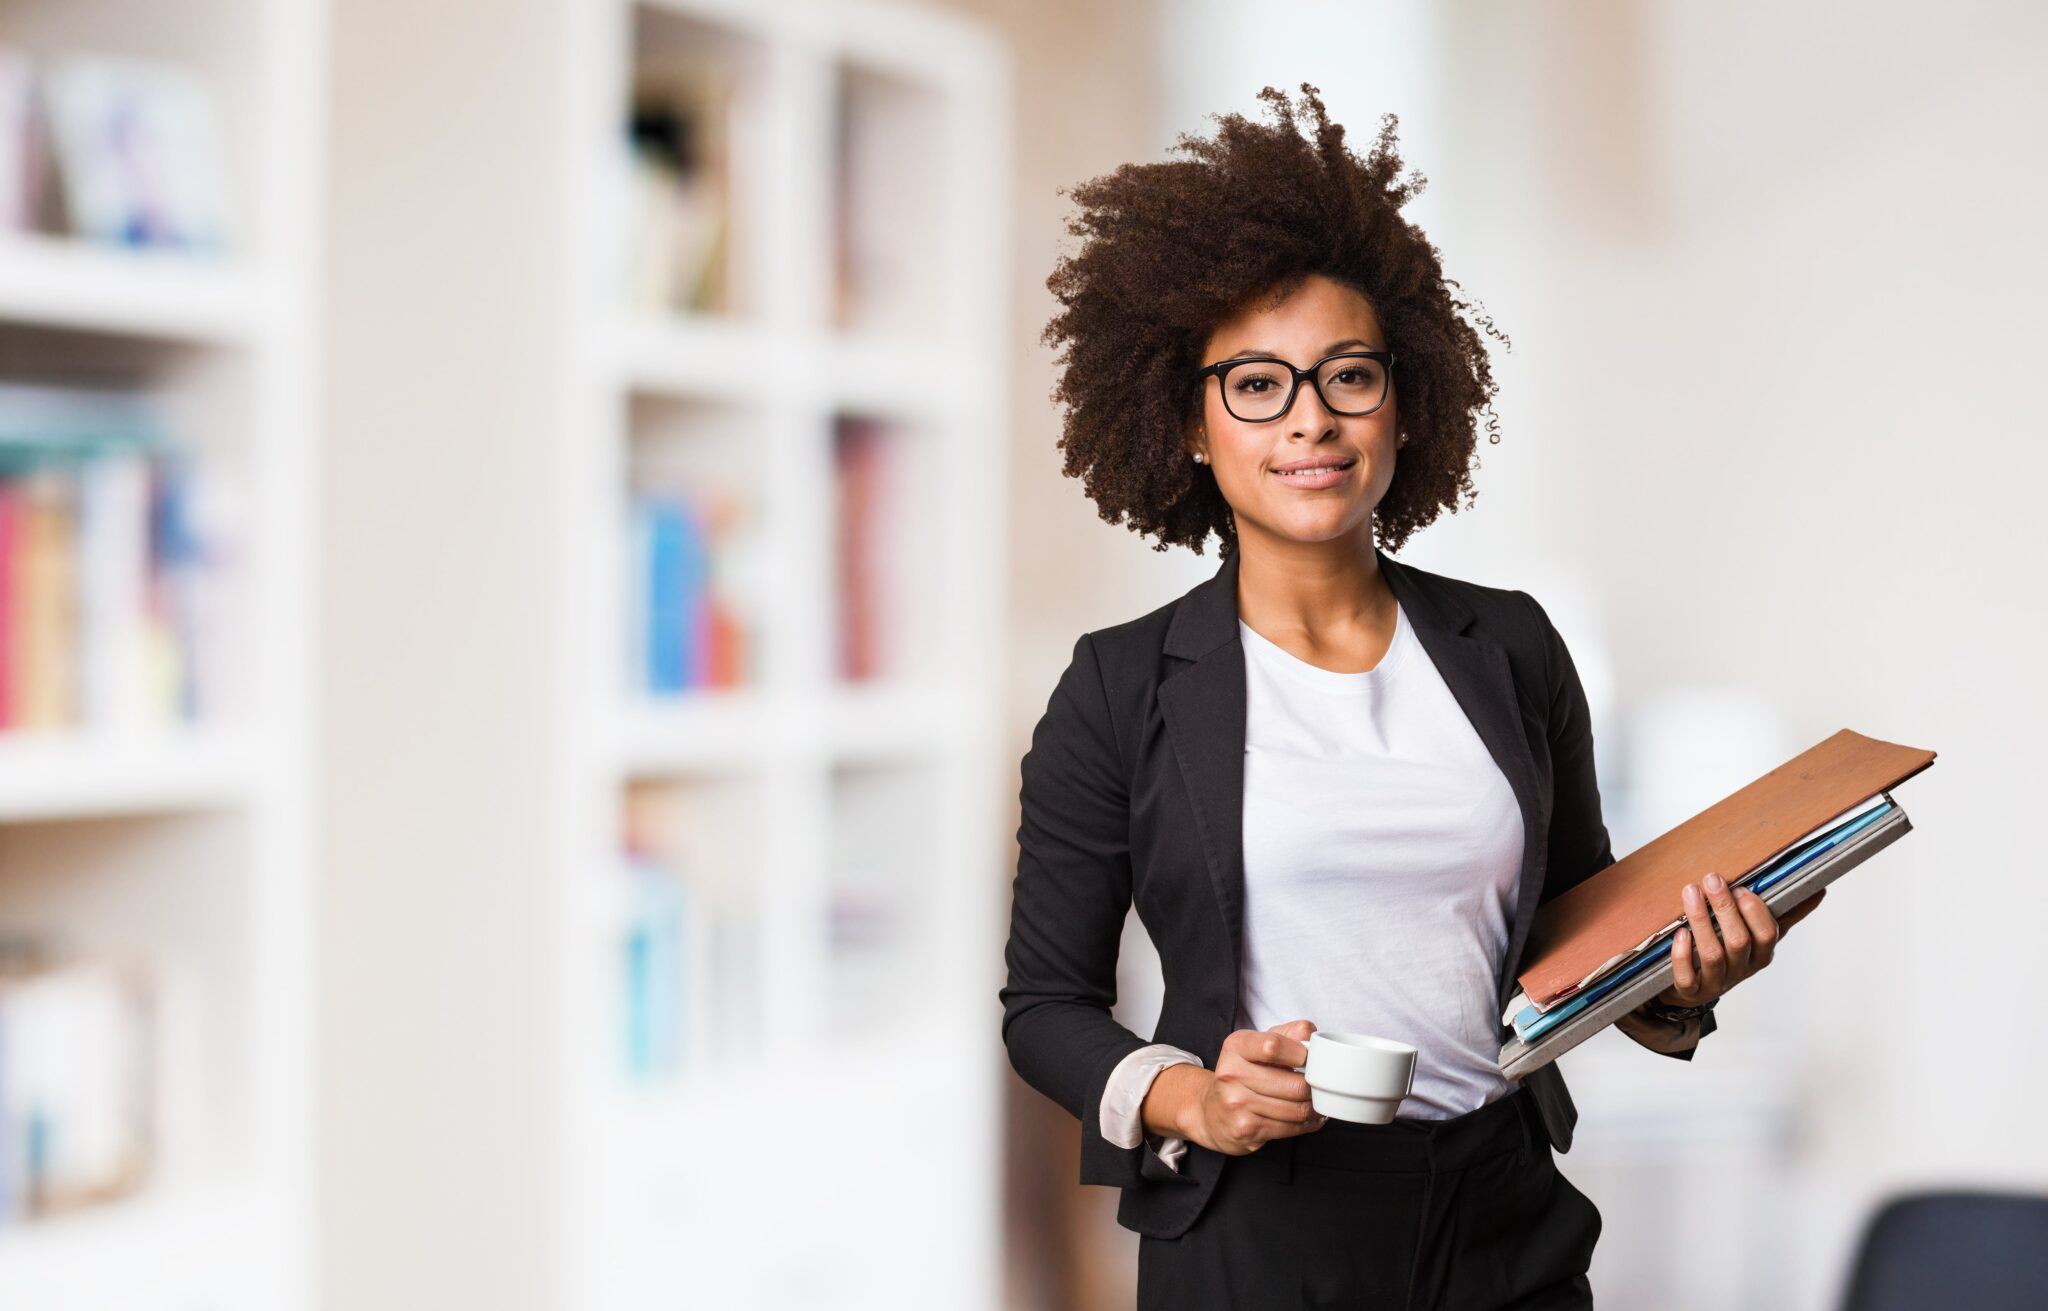 Connecticut Bans Natural Hair Discrimination in the Workplace